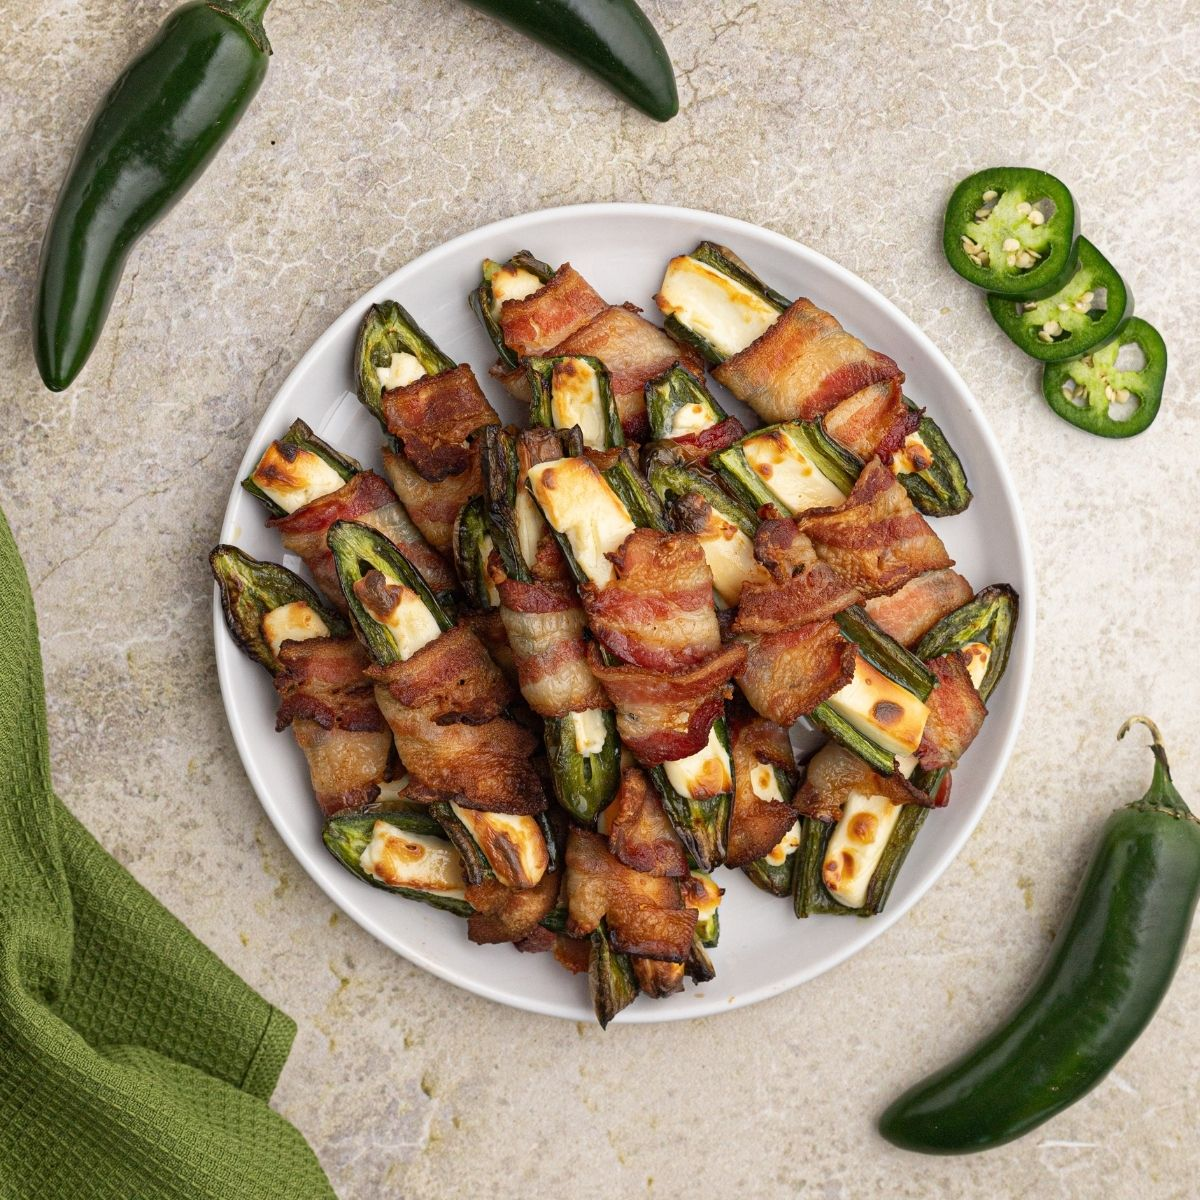 Air Fryer Jalepeno Poppers stuffed with cream cheese and wrapped in bacon, serve on a white plate